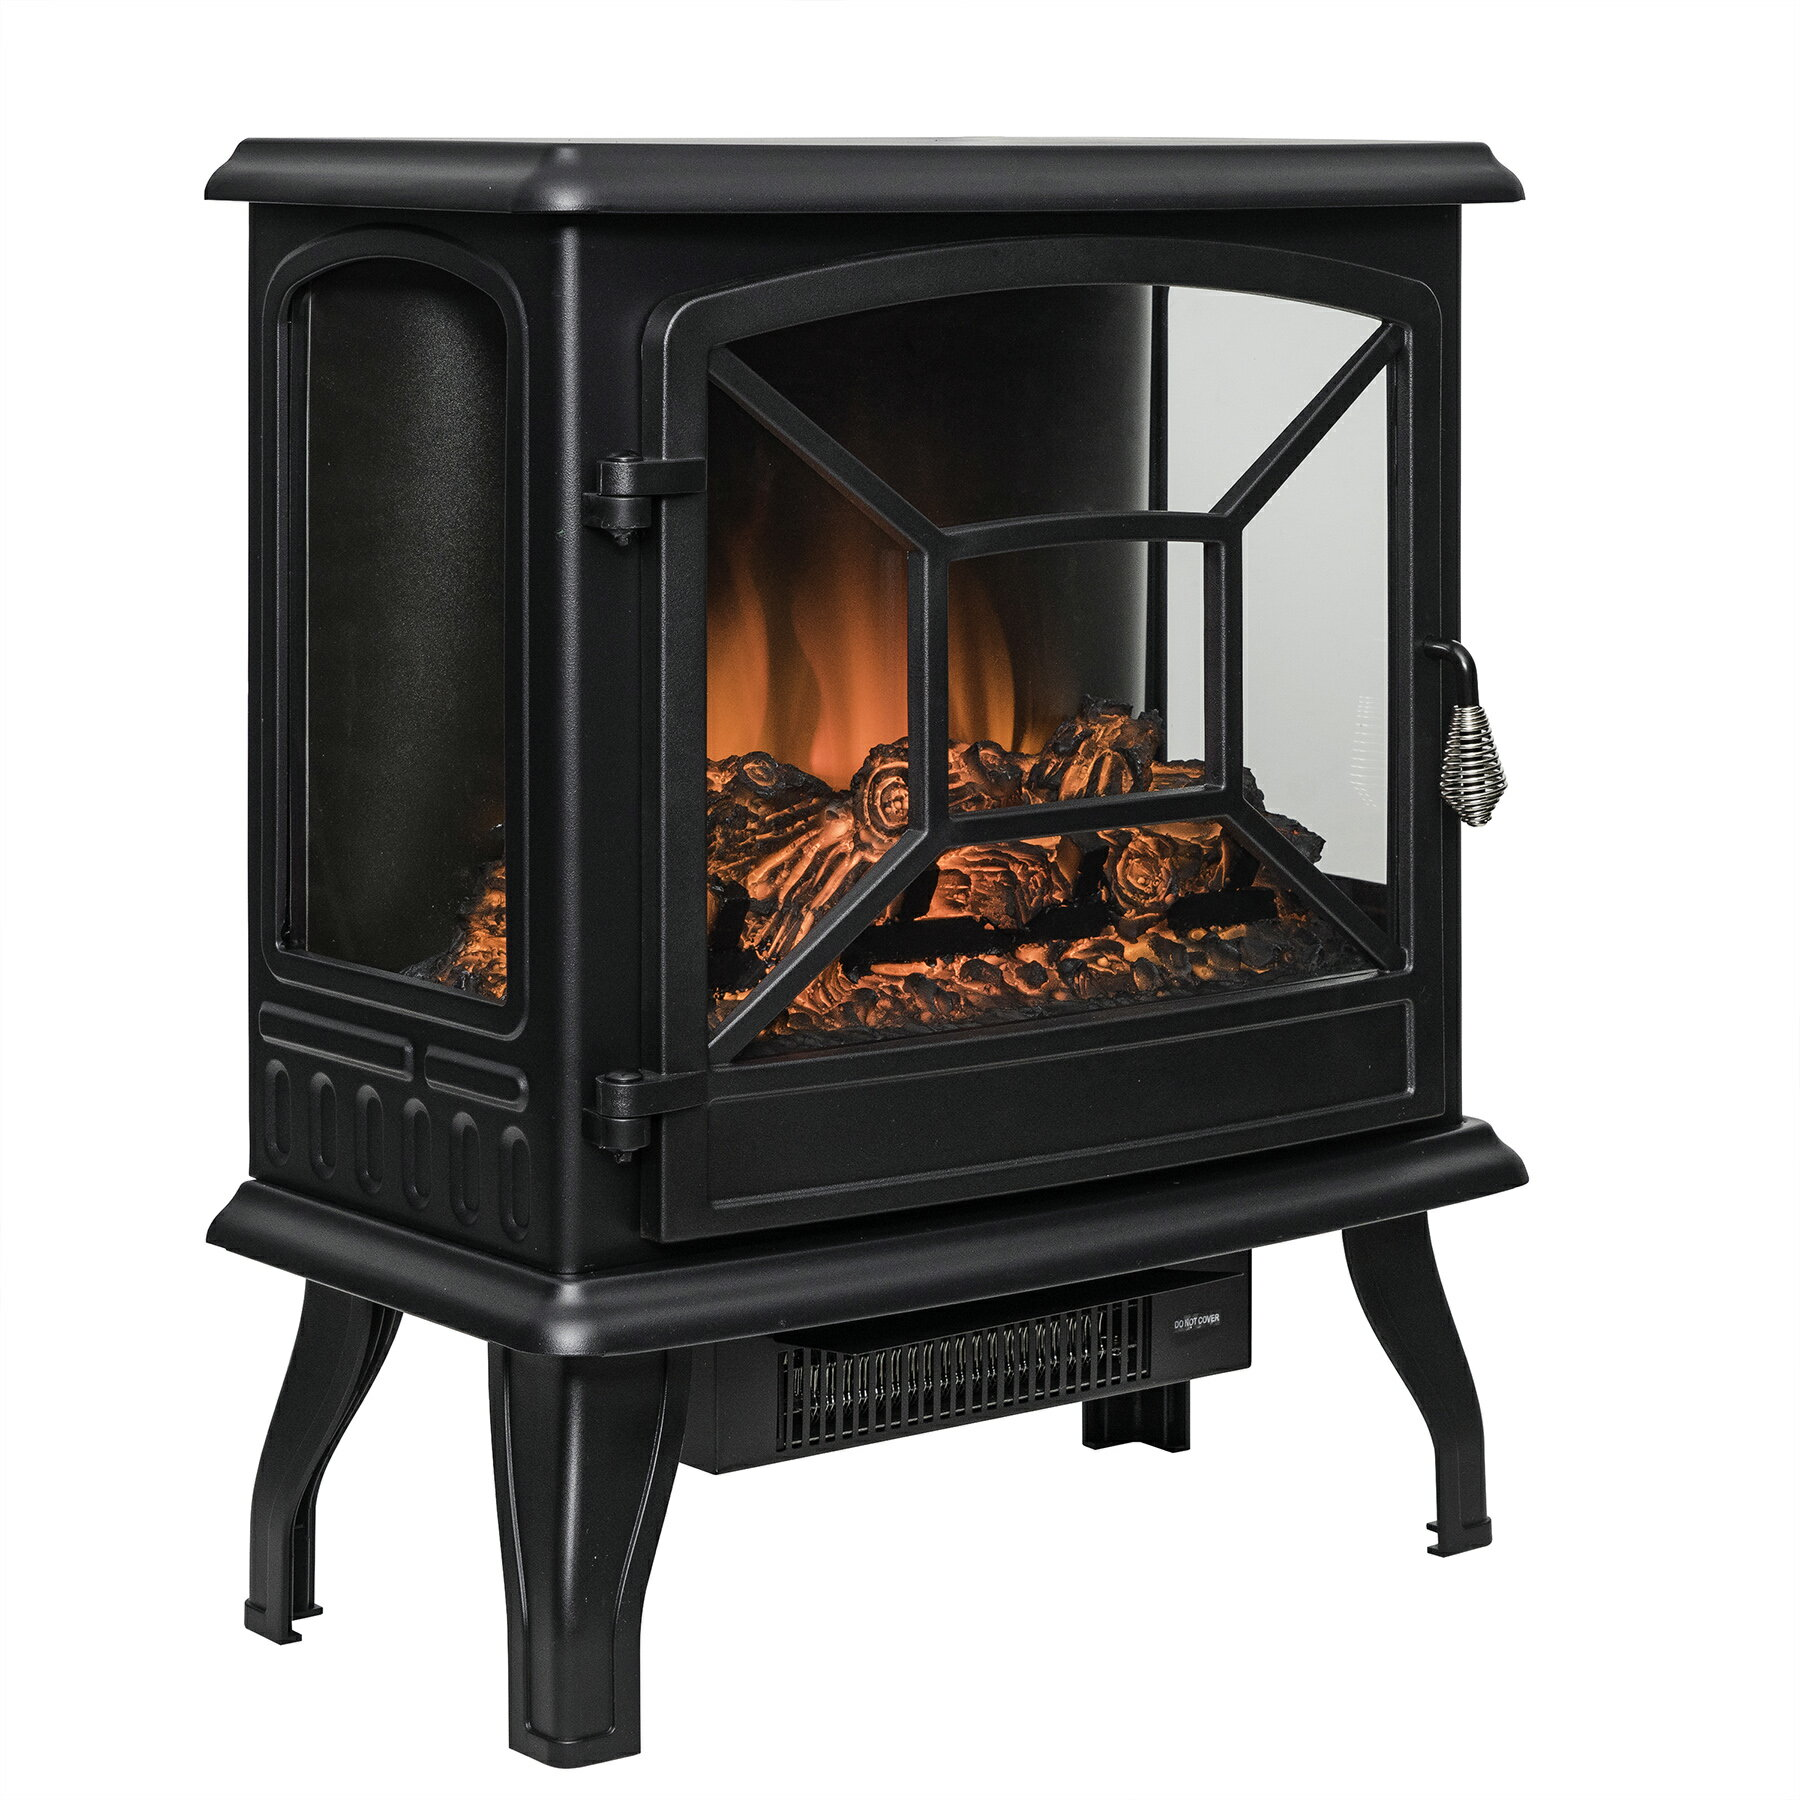 "AKDY 20"" Black Finish Freestanding Electric Fireplace Heater Stove 3"